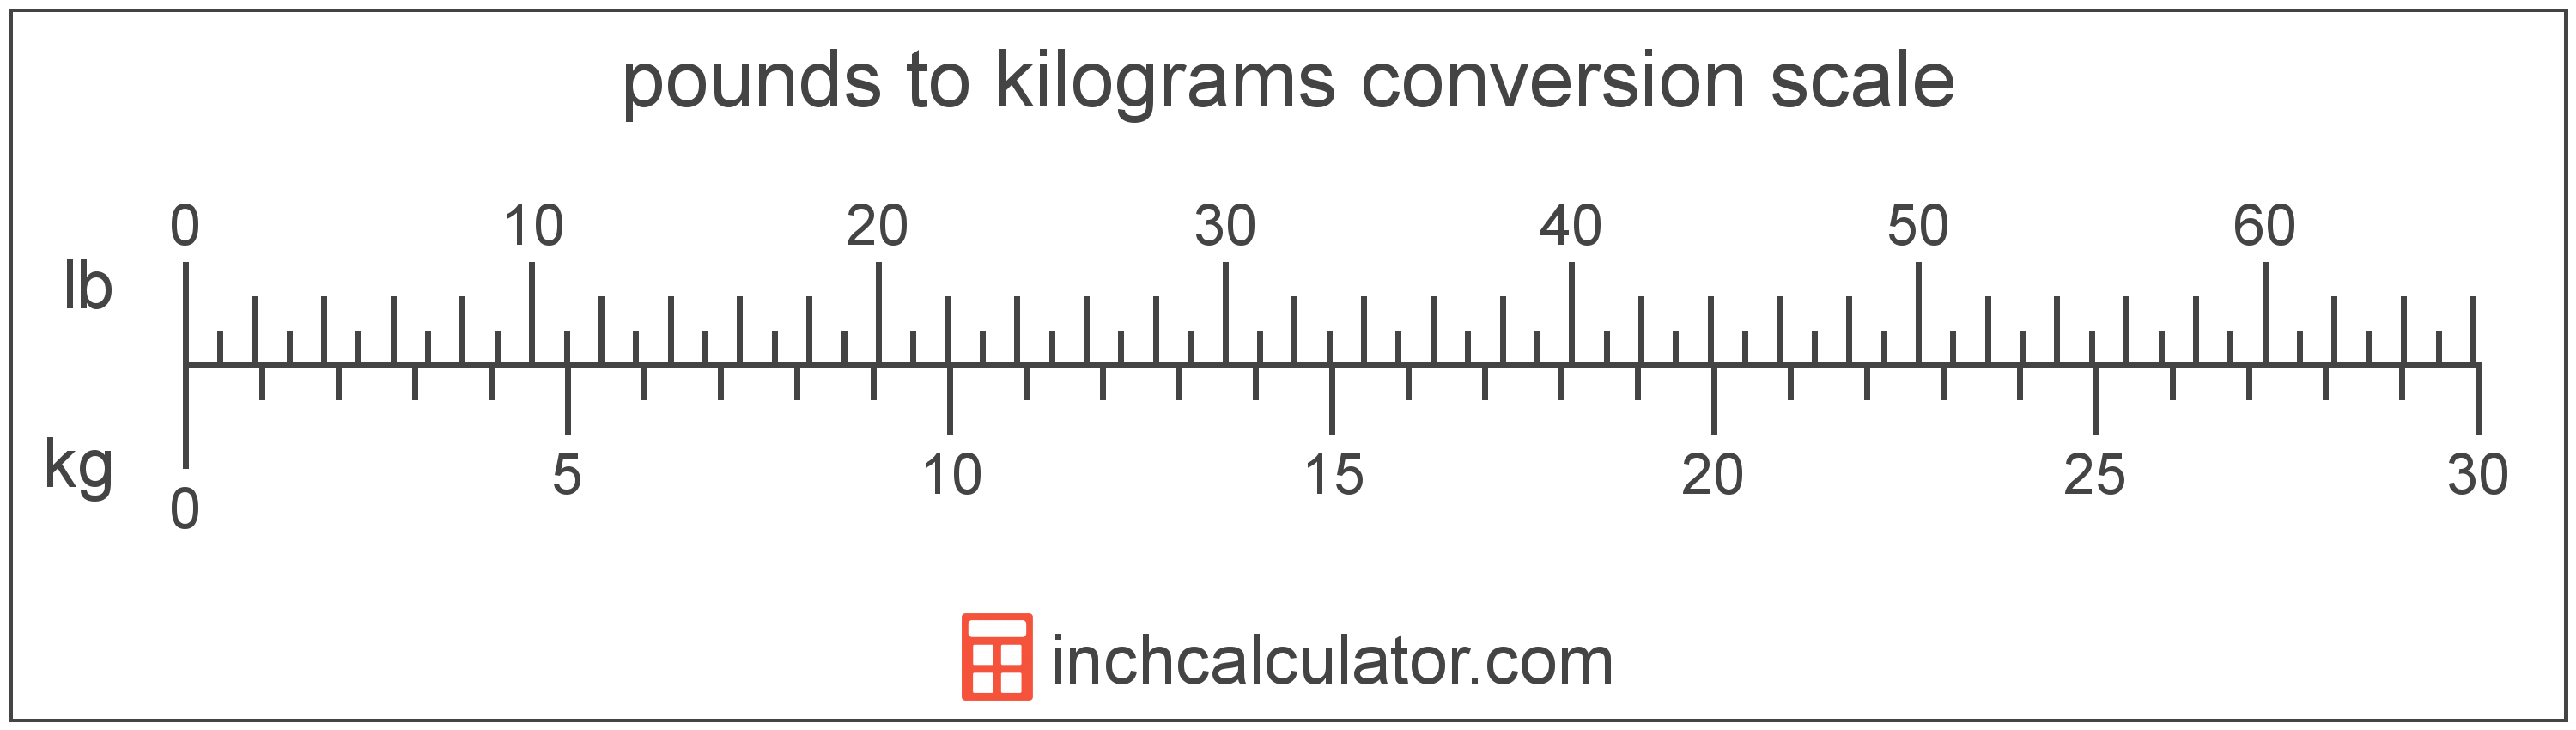 conversion scale showing kilograms and equivalent pounds weight values